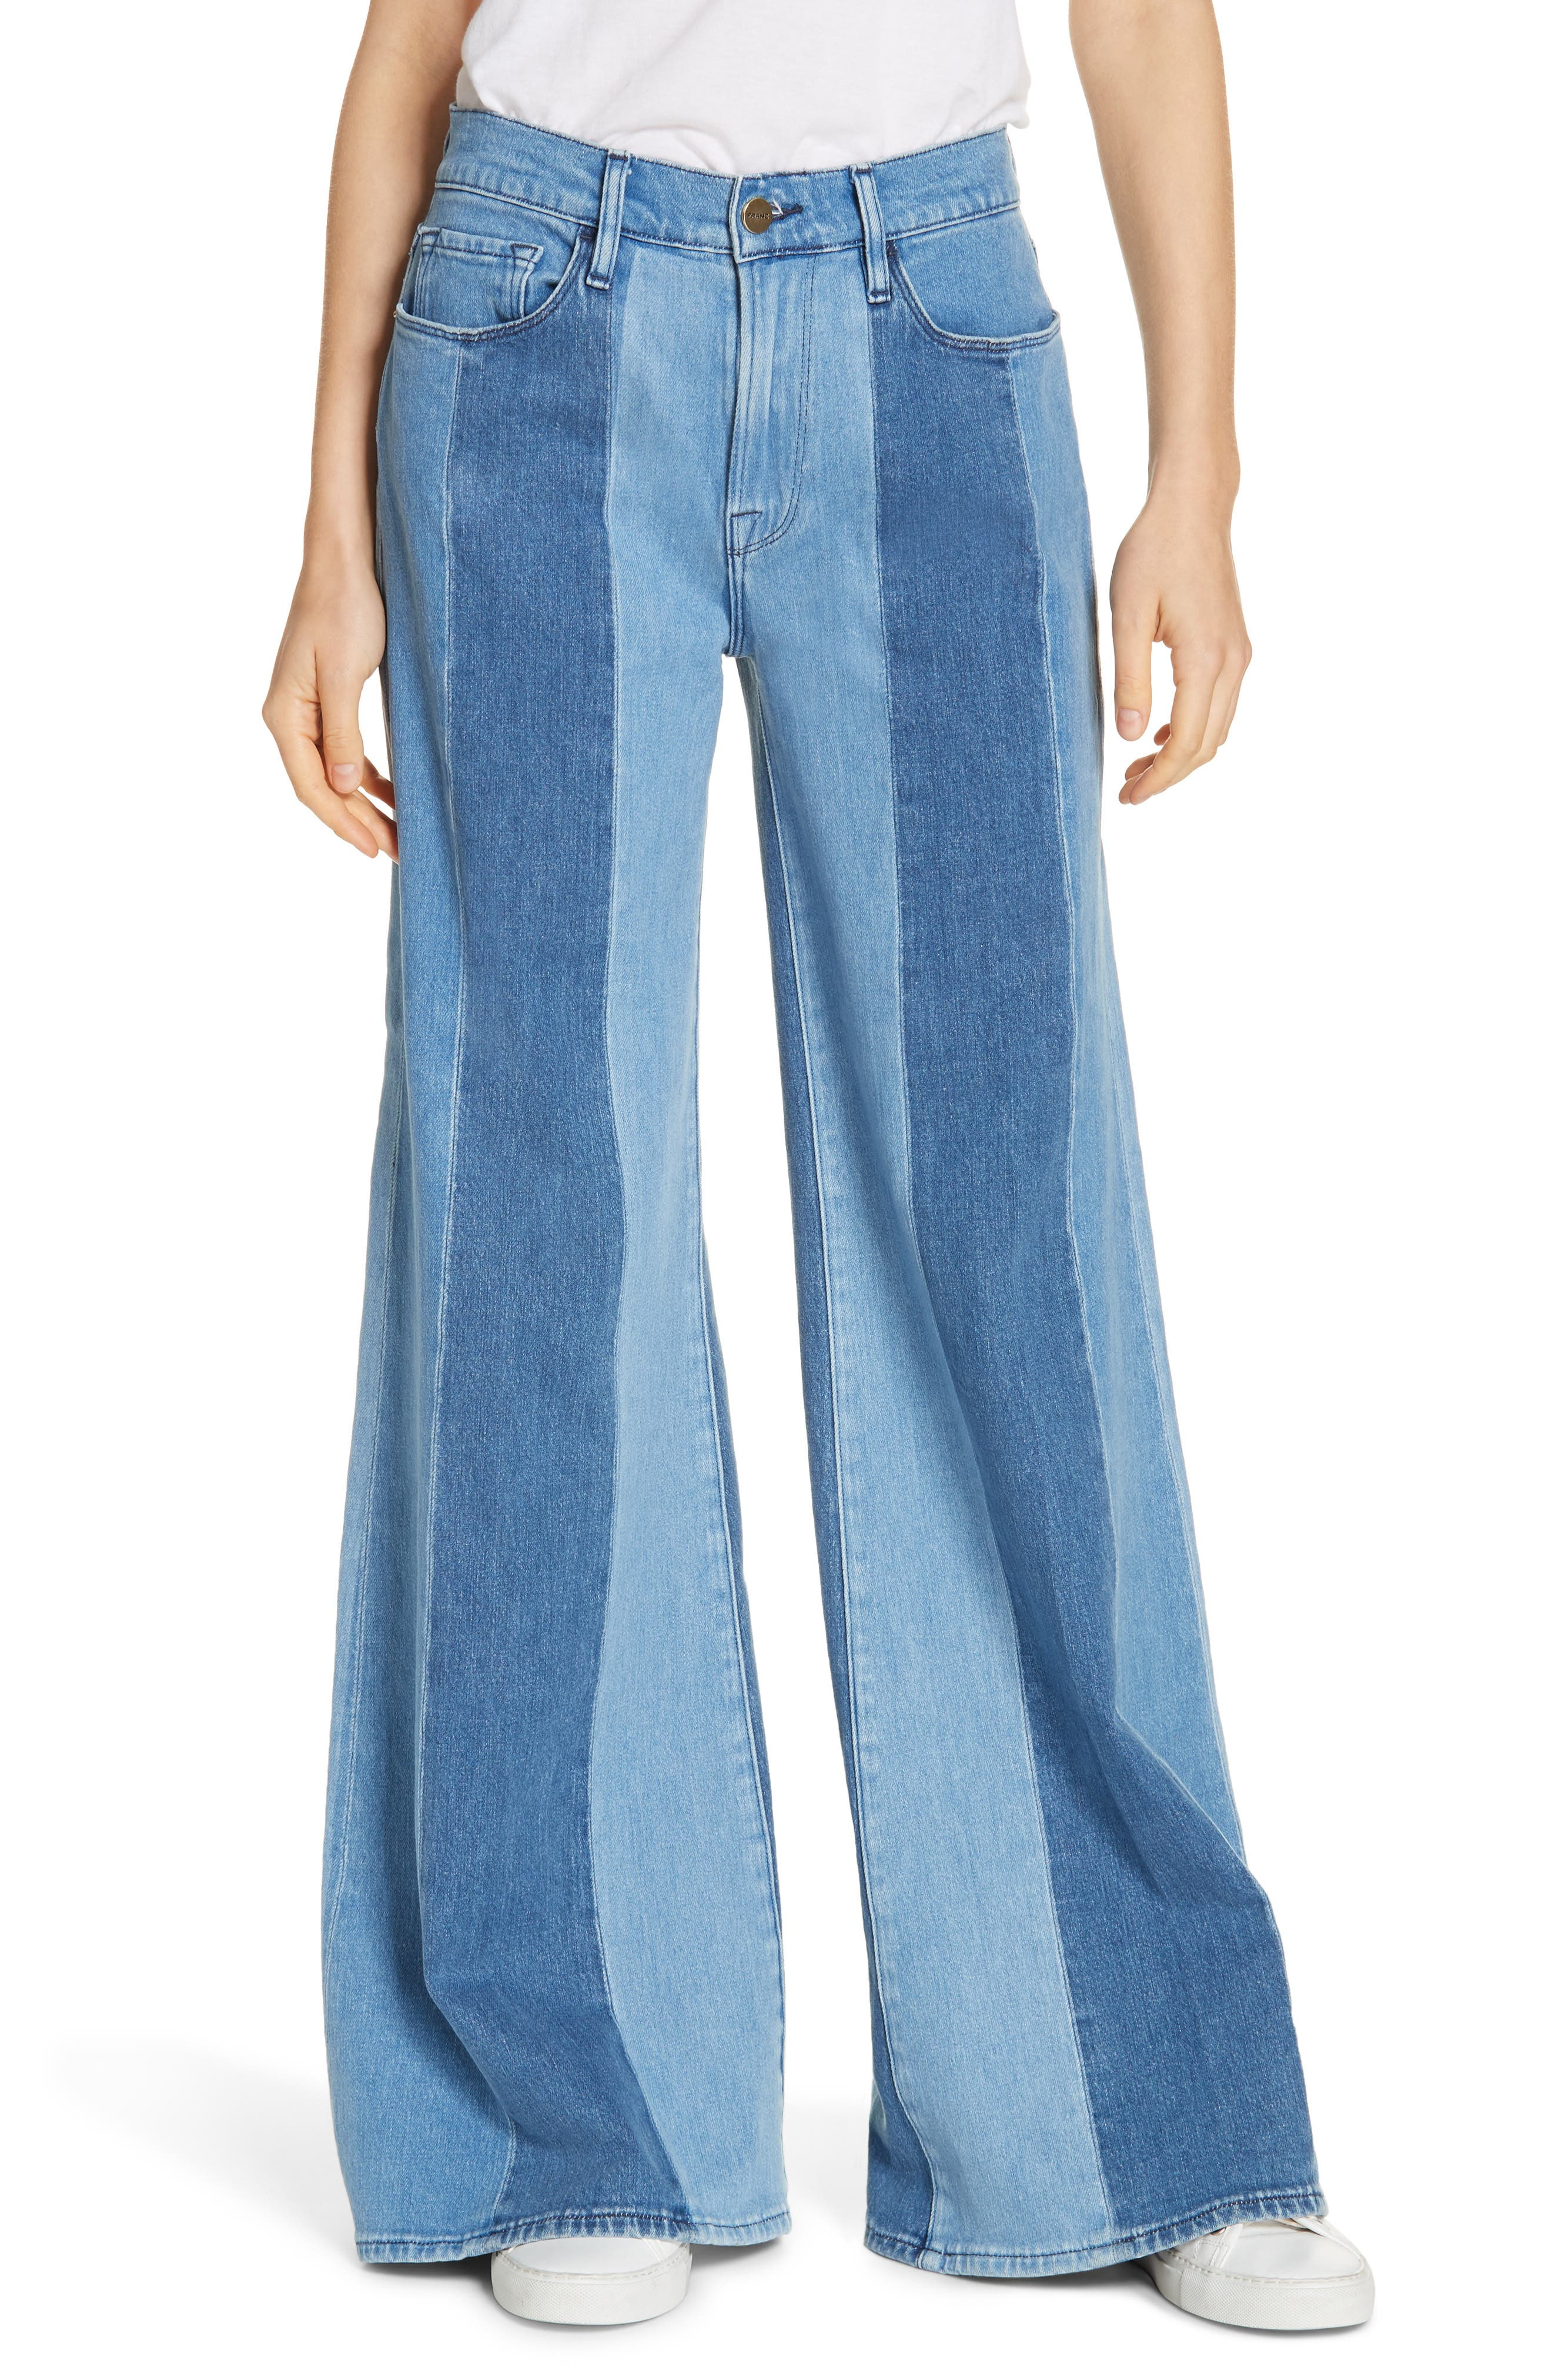 Le Palazzo Paneled Wide Leg Jeans,                             Main thumbnail 1, color,                             VINEYARD